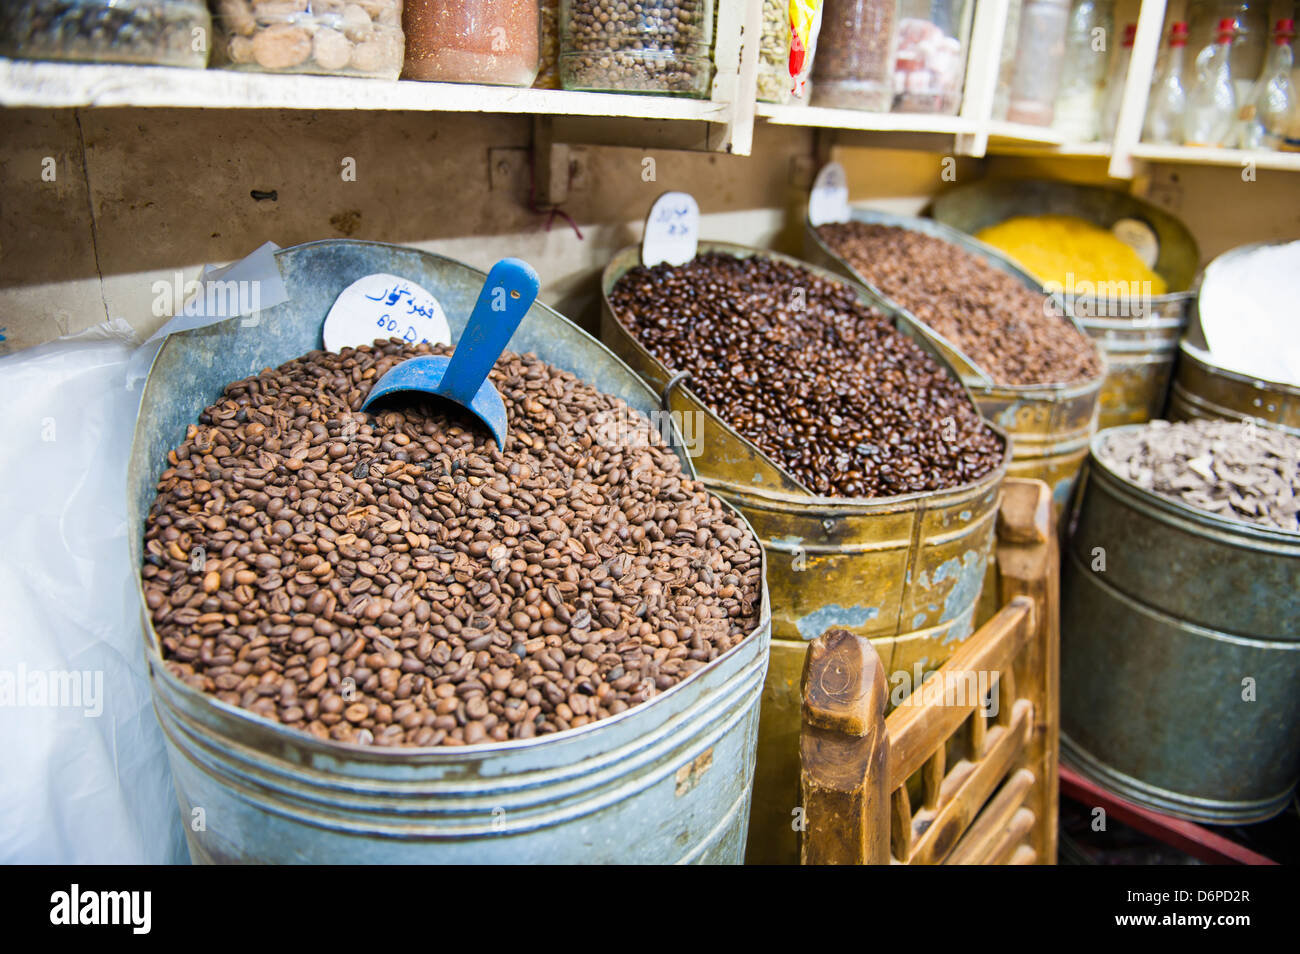 Coffee beans for sale in the souks of Marrakech, Morocco, North Africa, Africa - Stock Image